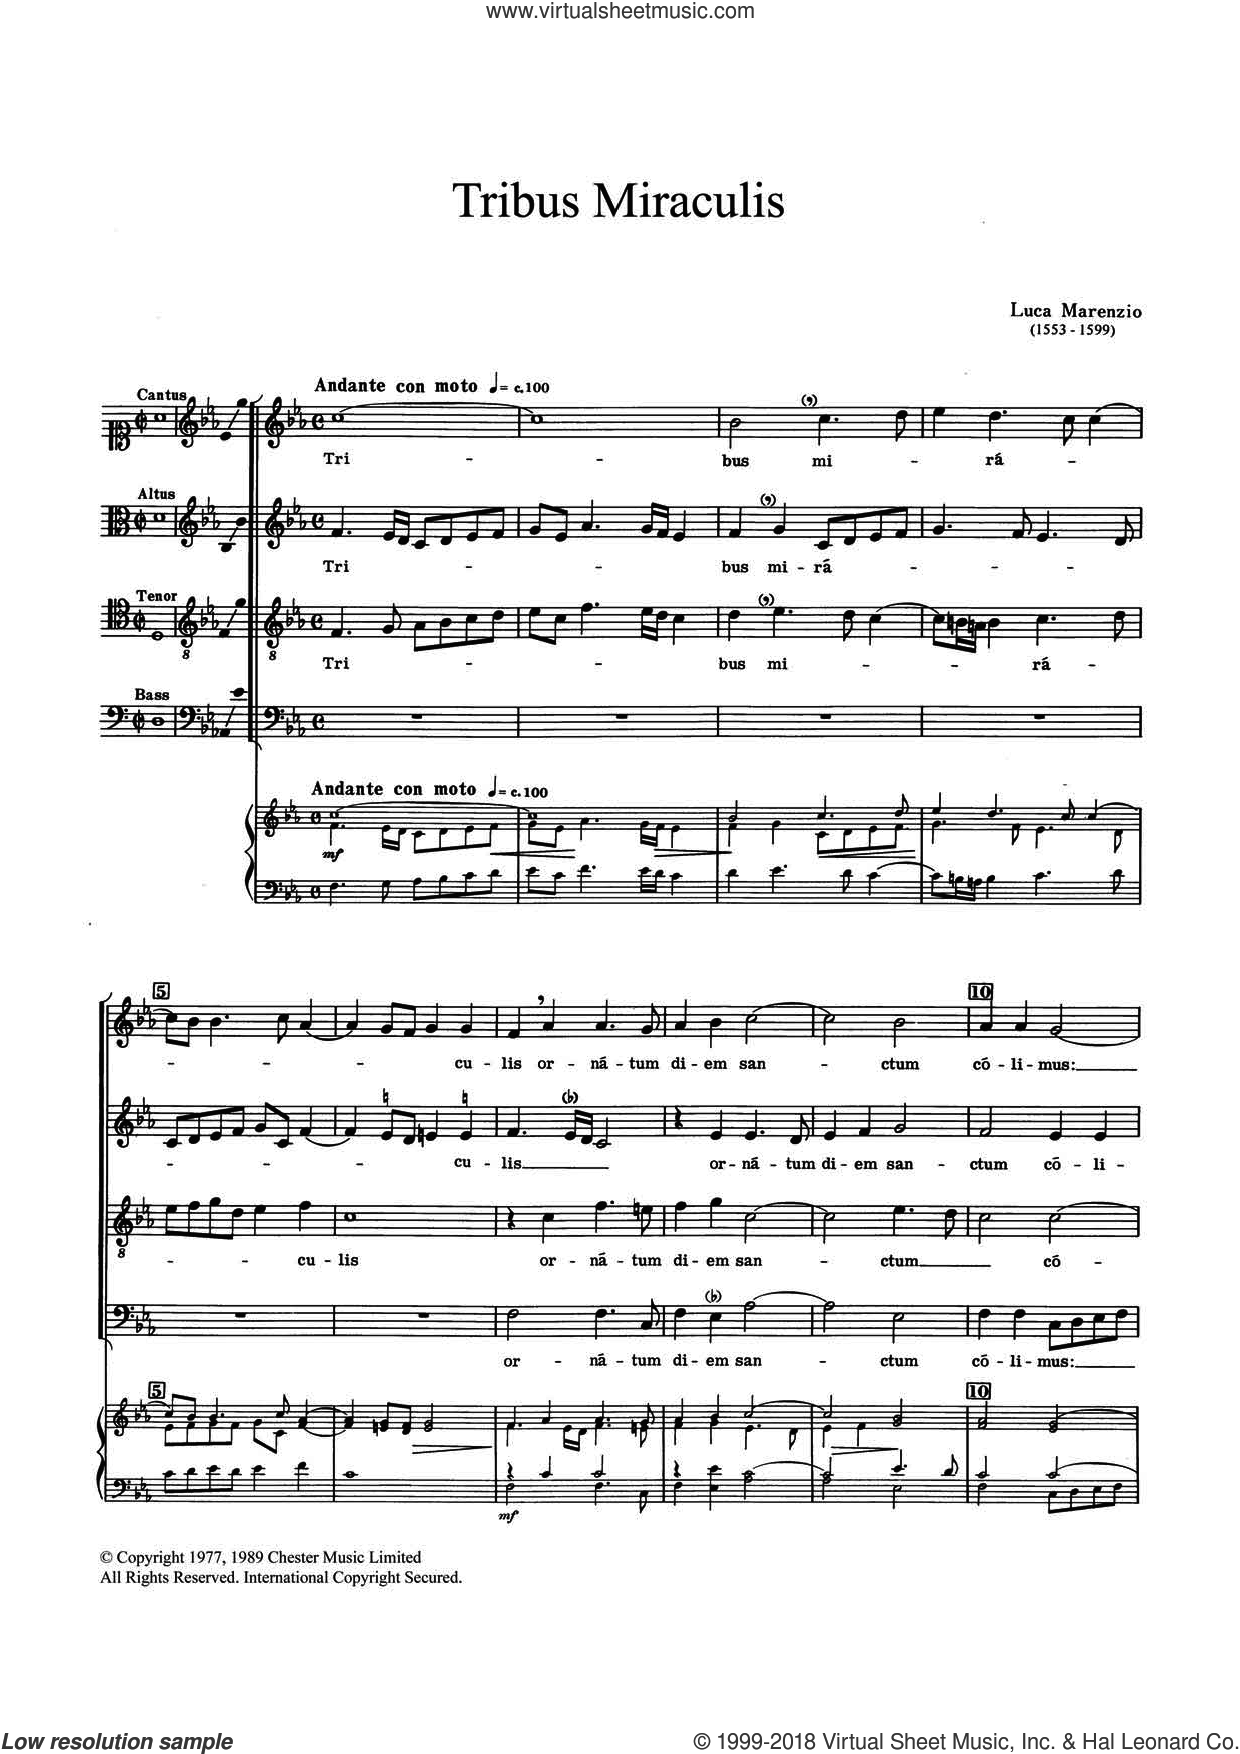 Tribus Miraculis sheet music for choir and piano by Luca Marenzio